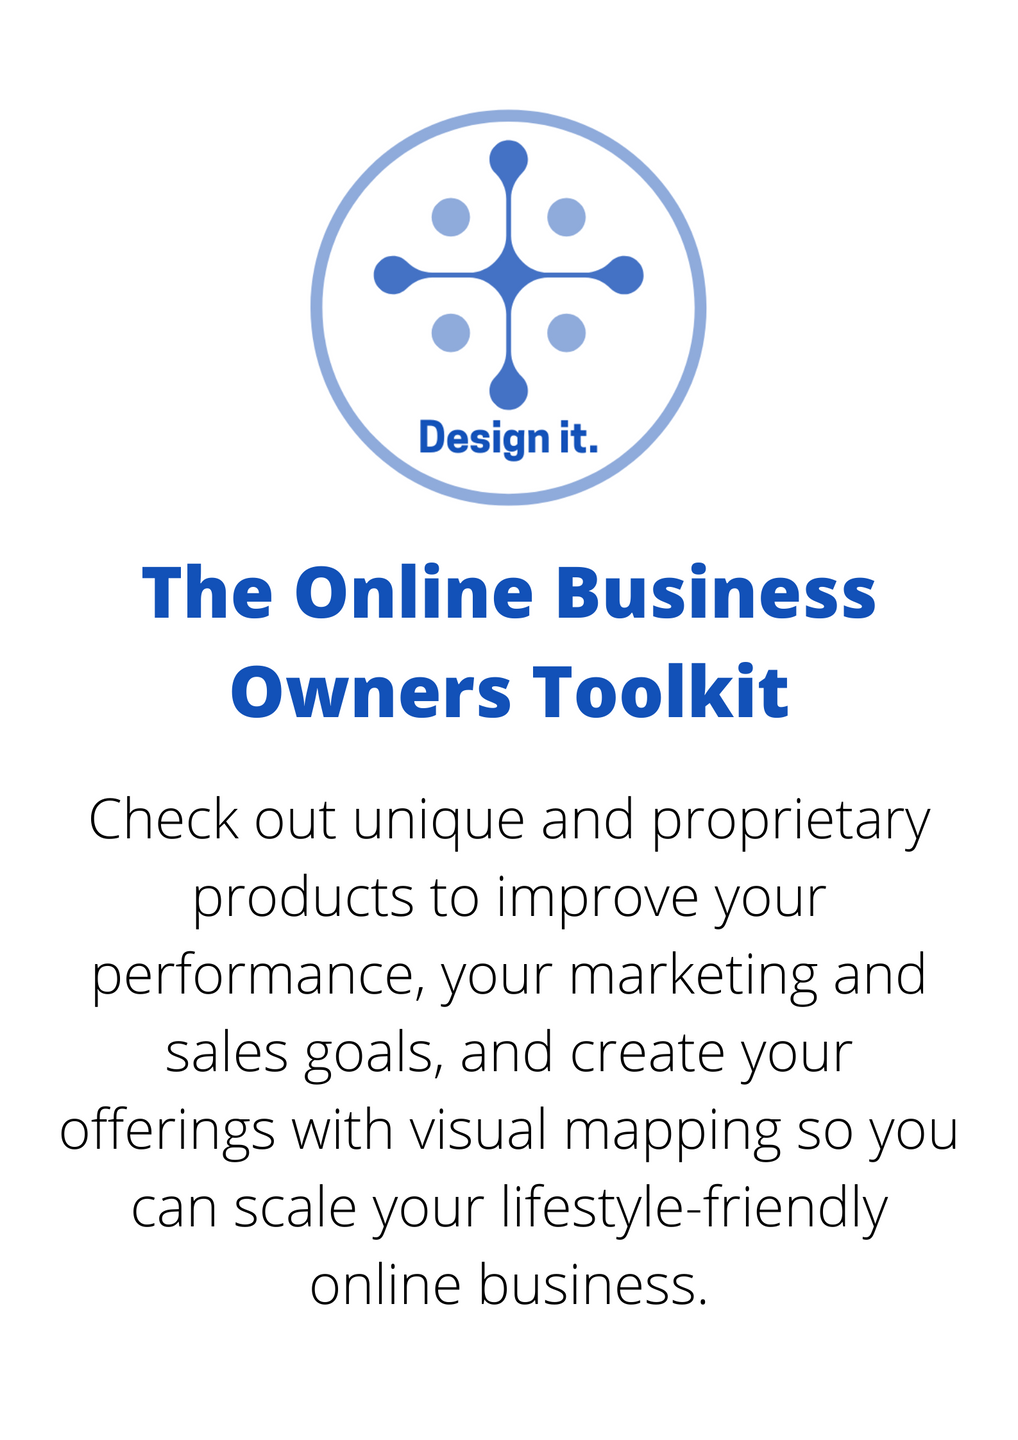 The Online Business Owners Toolkit